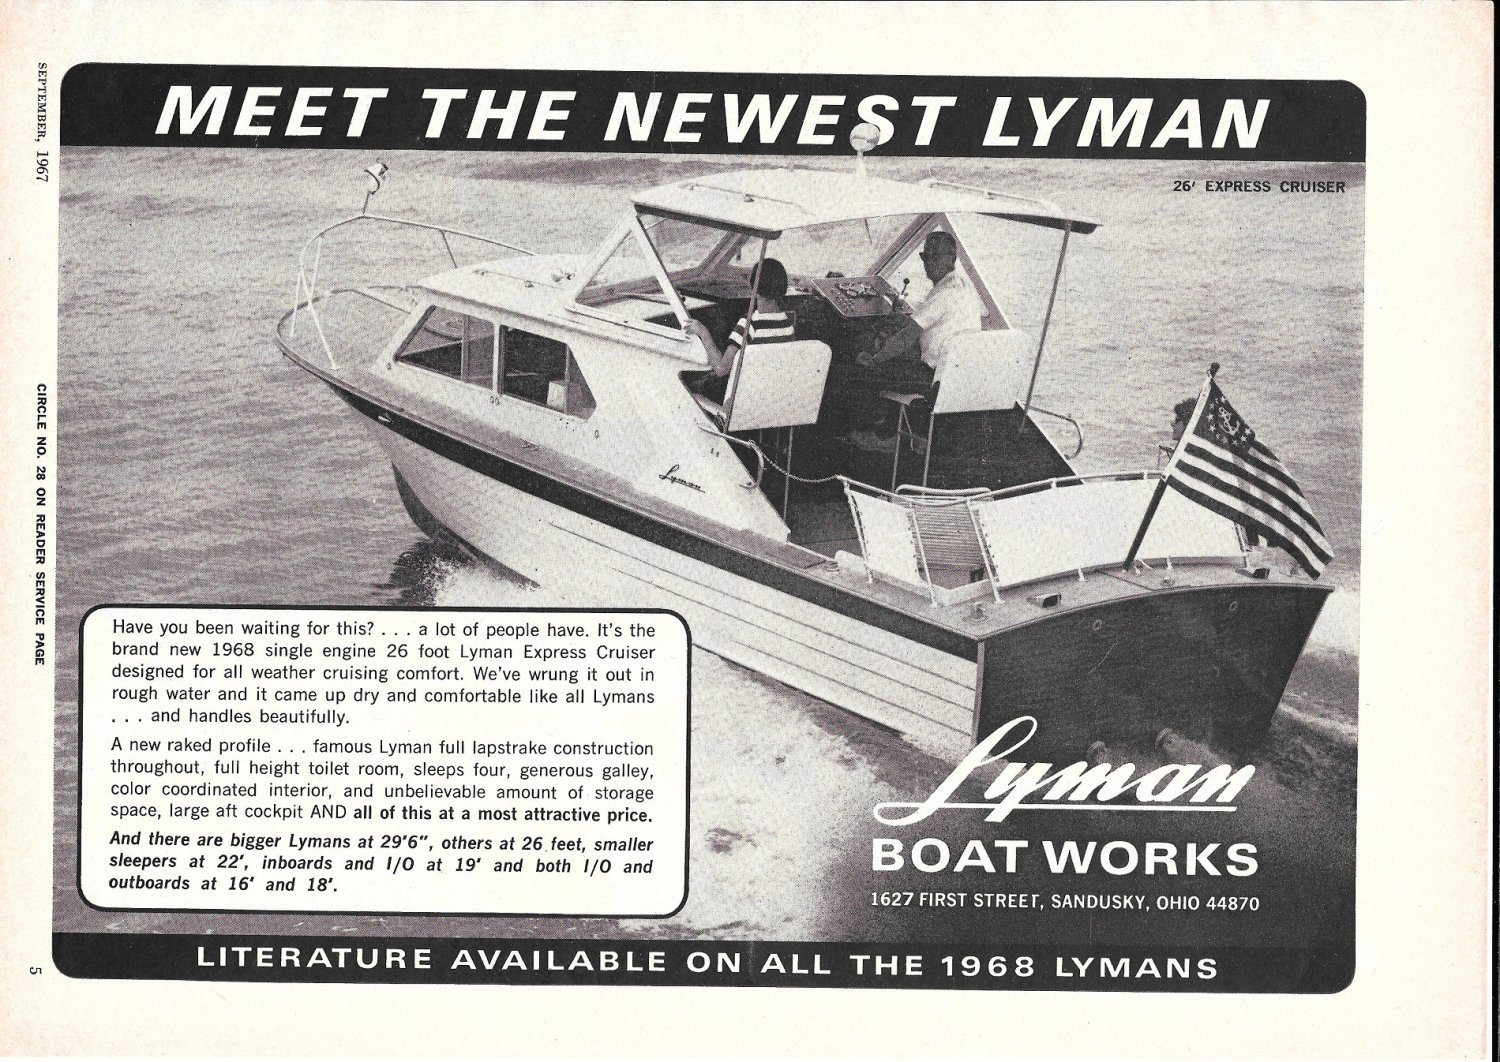 1967 Lyman Boat Works Ad- Great Photo 26' Express Cruiser